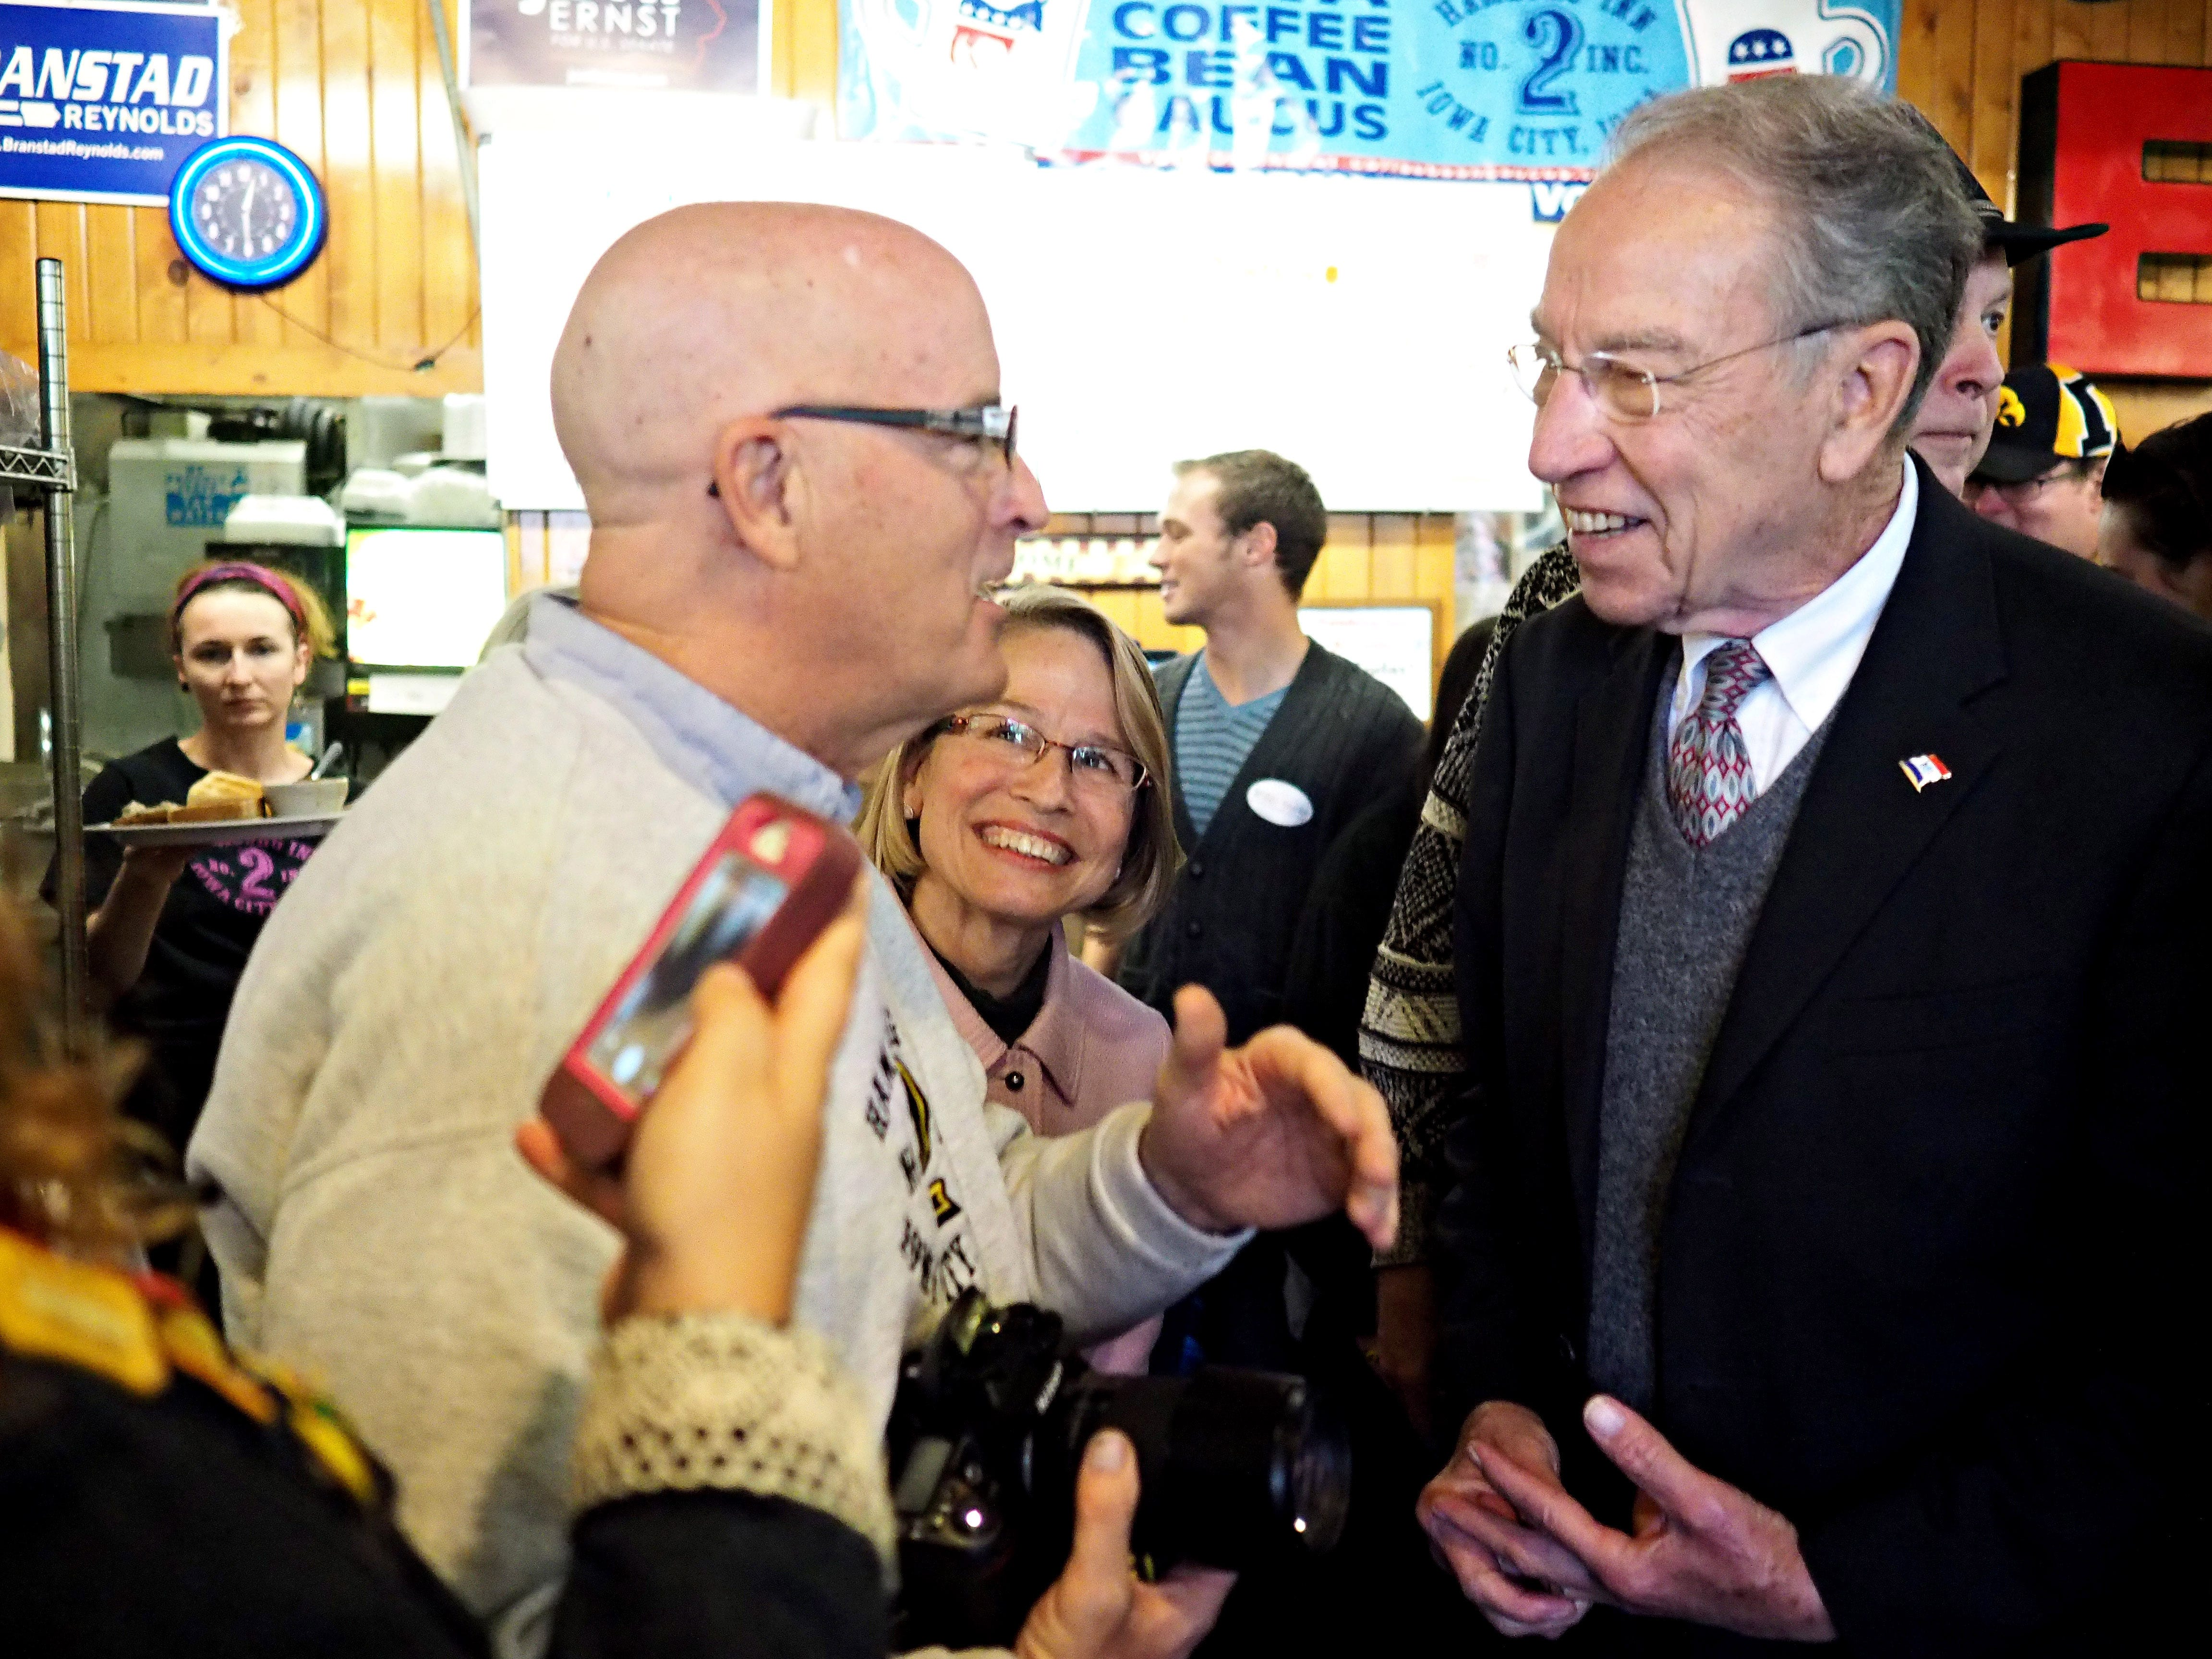 Congressional candidate Marianette Miller-Meeks (center) introduces Hamburg Inn No. 2 owner to Sen. Chuck Grassley at a Meet and Greet held Friday at Oct. 31, 2014.